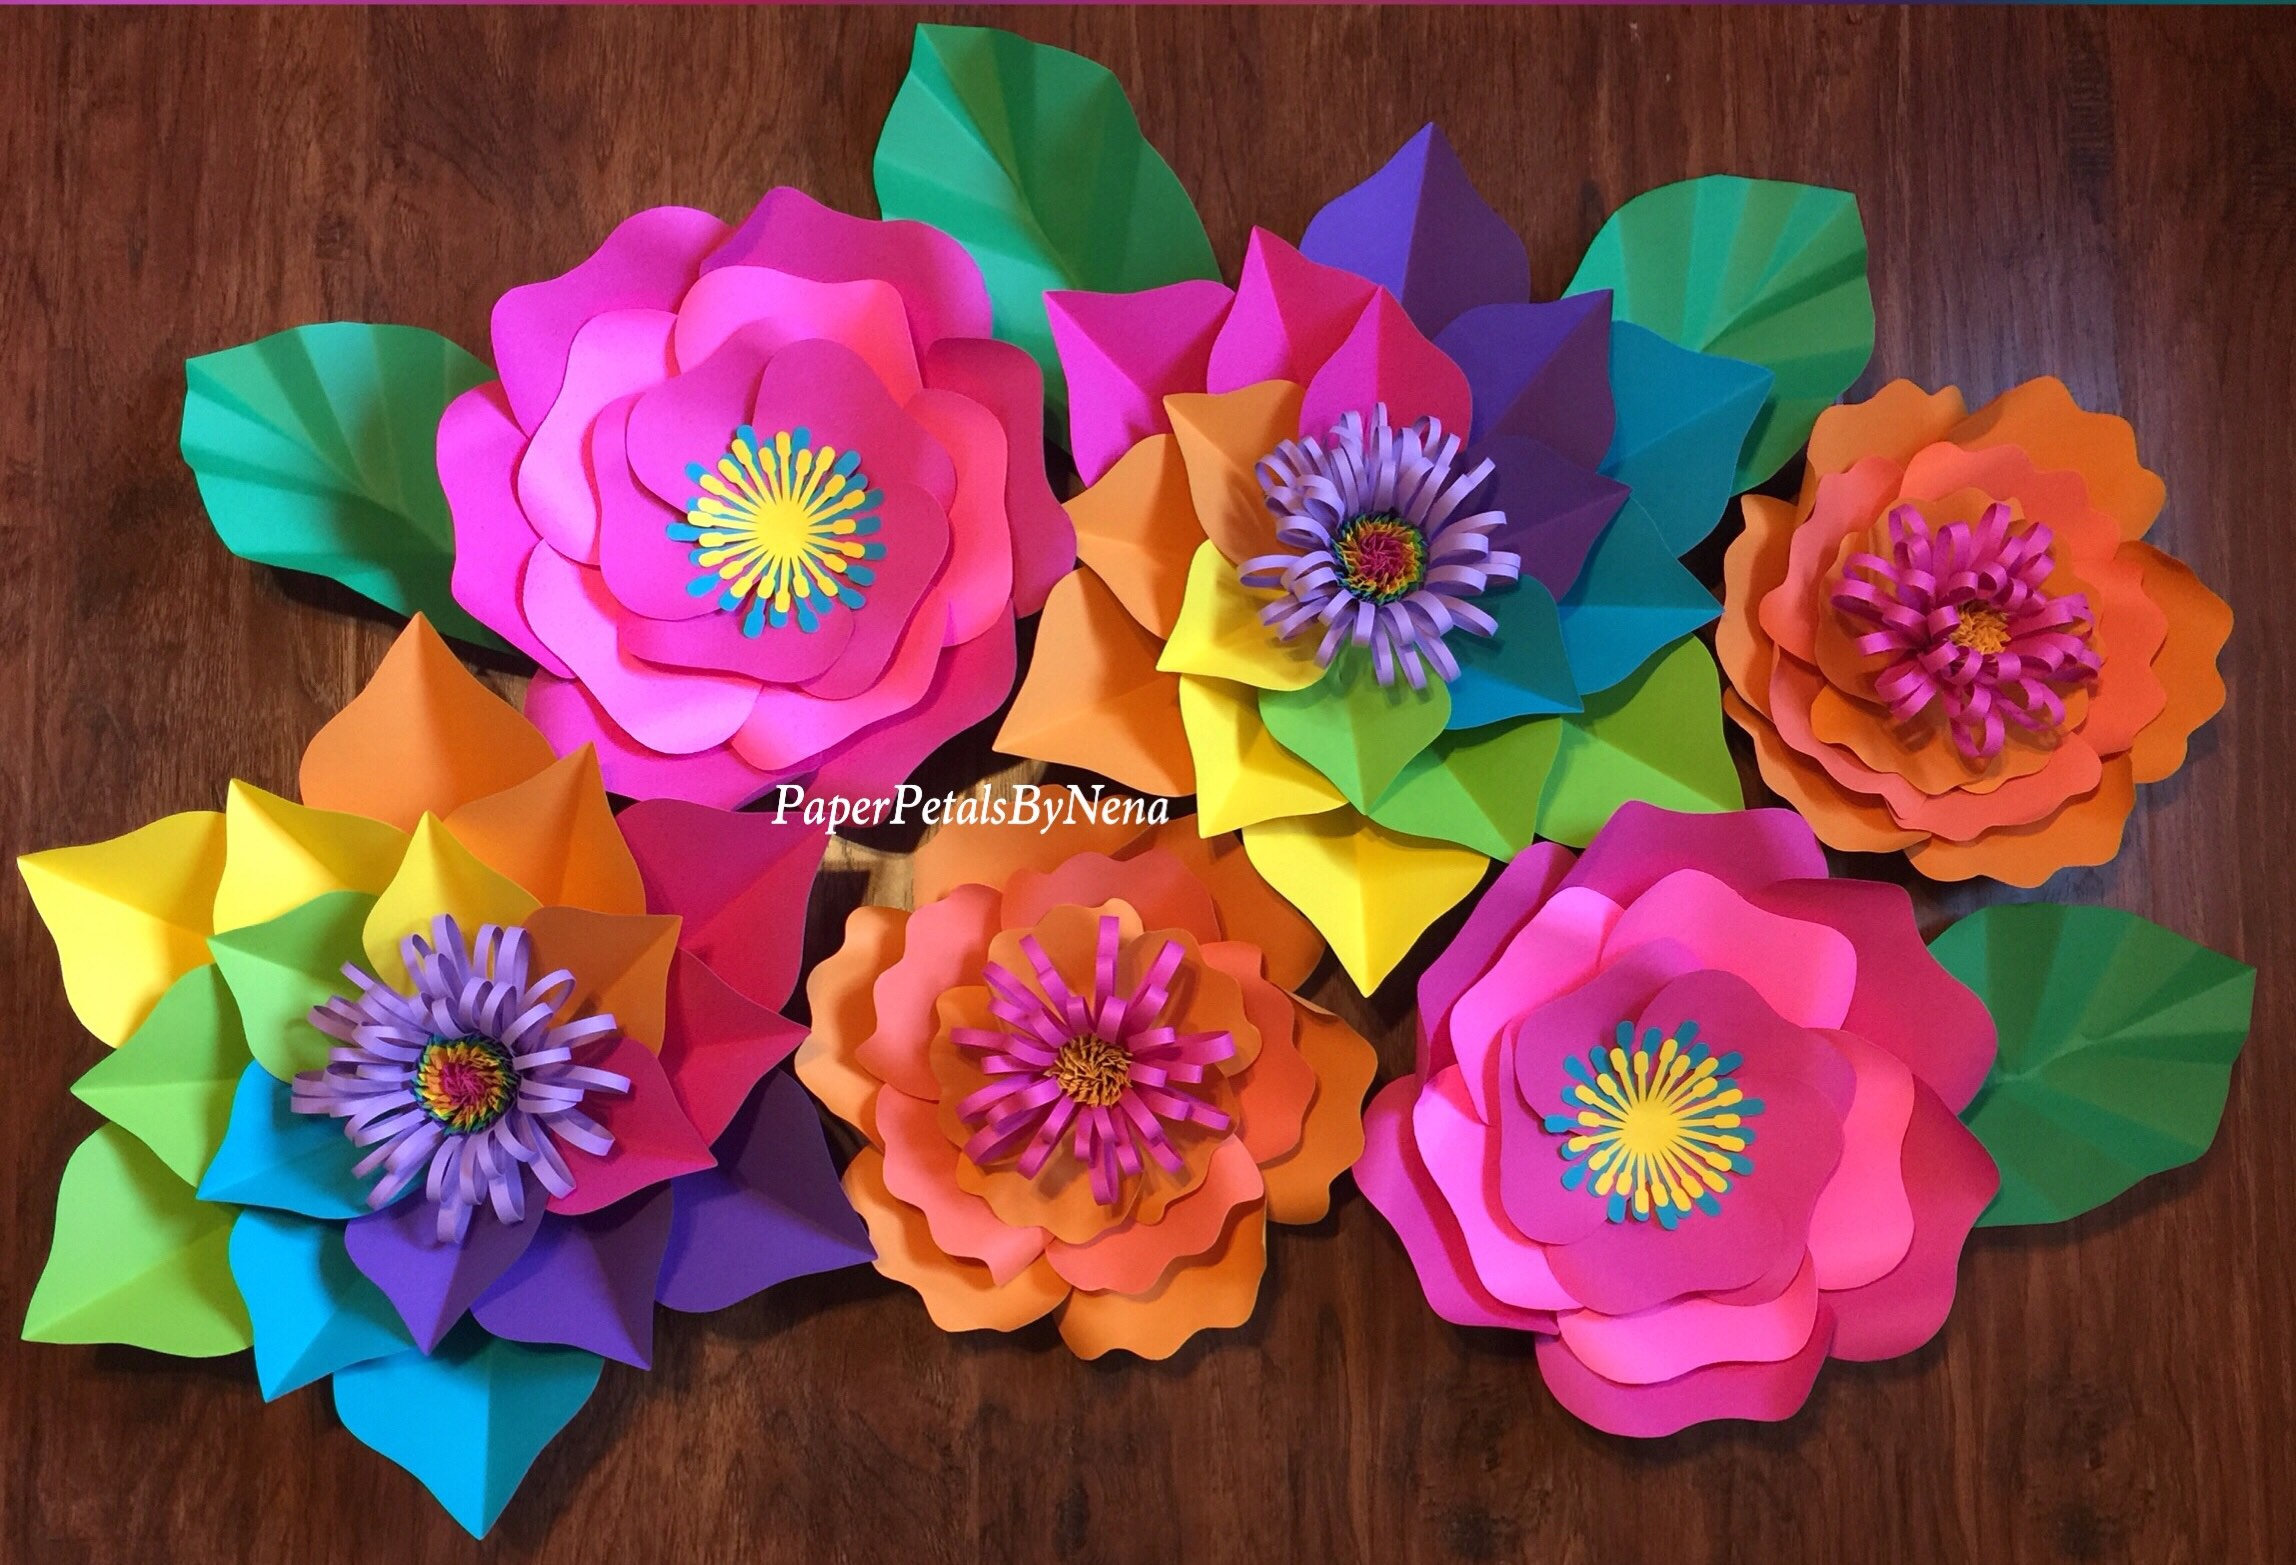 These Gorgeous Paper Flowers From Petals By Nena Come In All Shapes And Colors Would Make Perfect Party Decorations If Youd Rather DIY Your Own